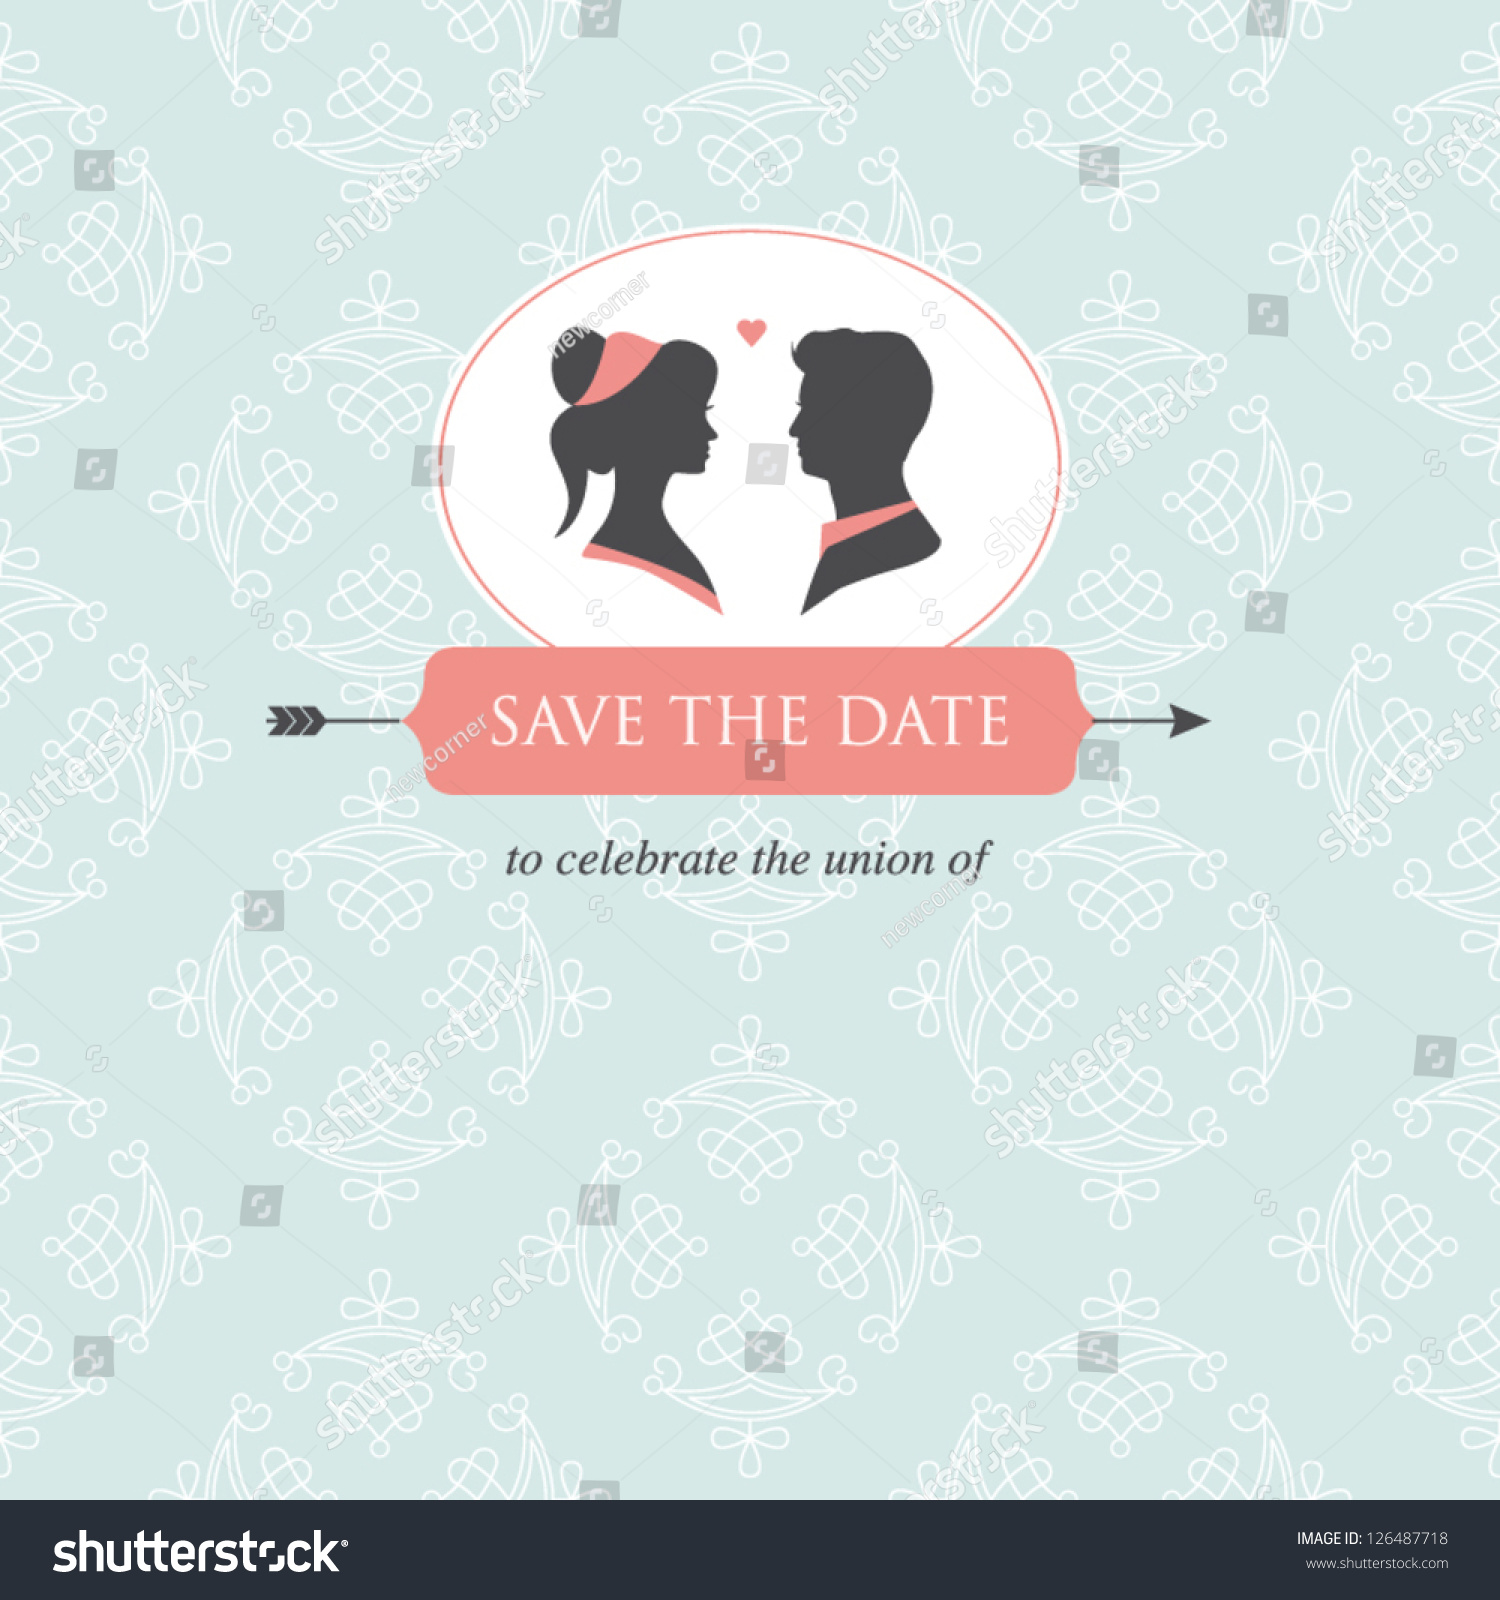 Wedding Invitation Card Template Editable Wedding Vector – Template Invitation Card